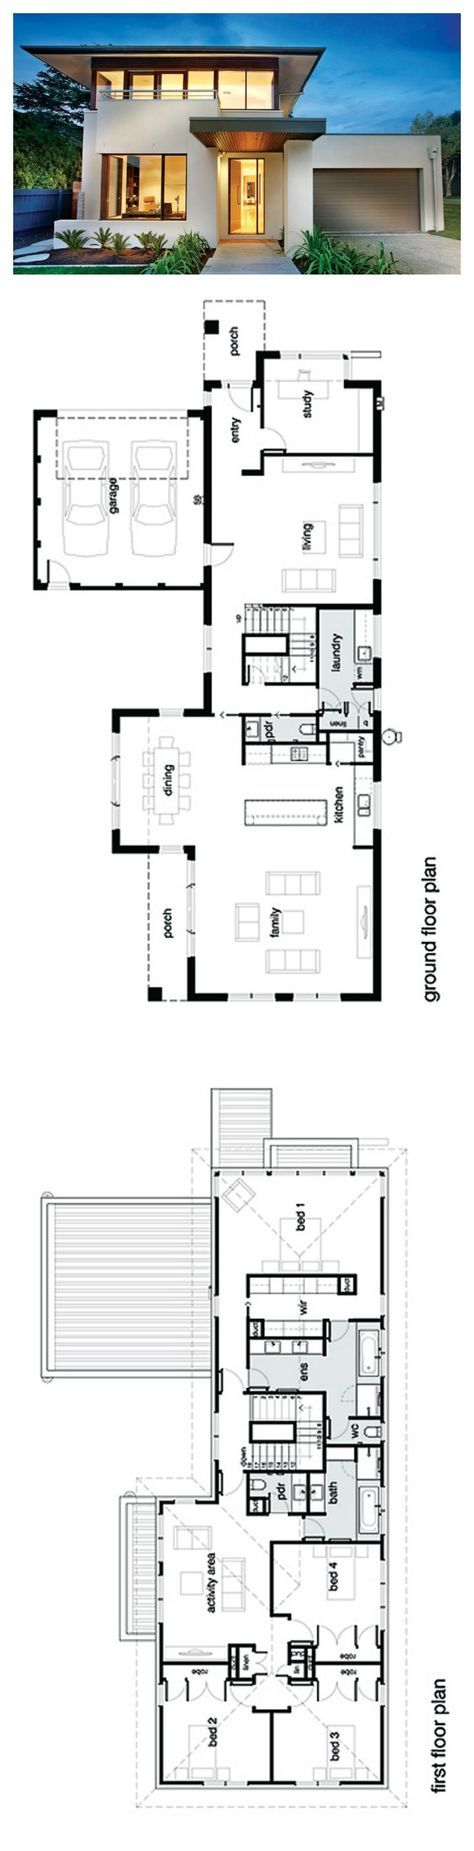 Plan #496-18; 3584 SF | 4 bed + study | 2.5 bath | 2 car | 2 story.